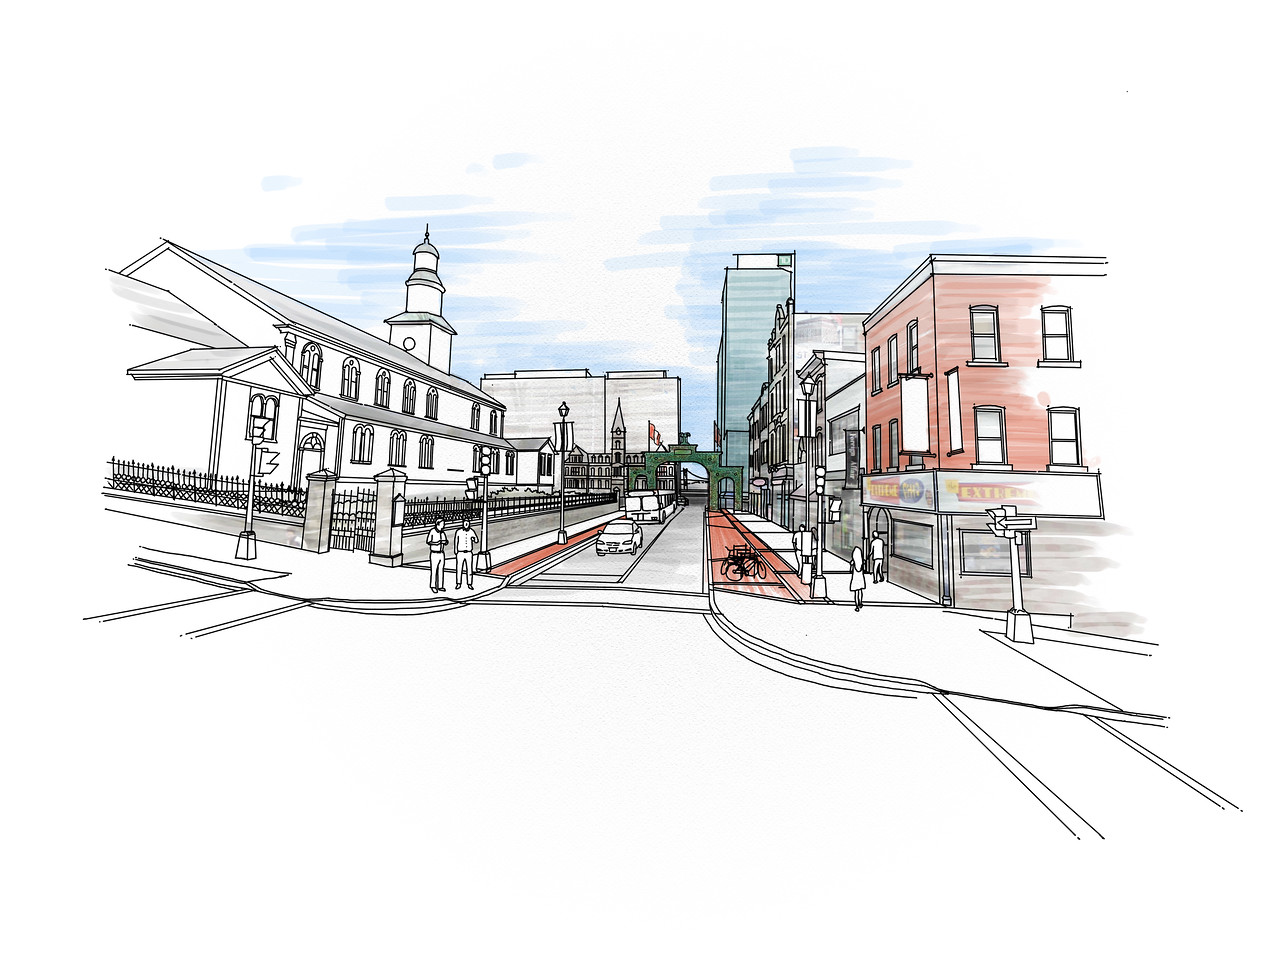 A perspective rendering from my thesis project on Barrington Street